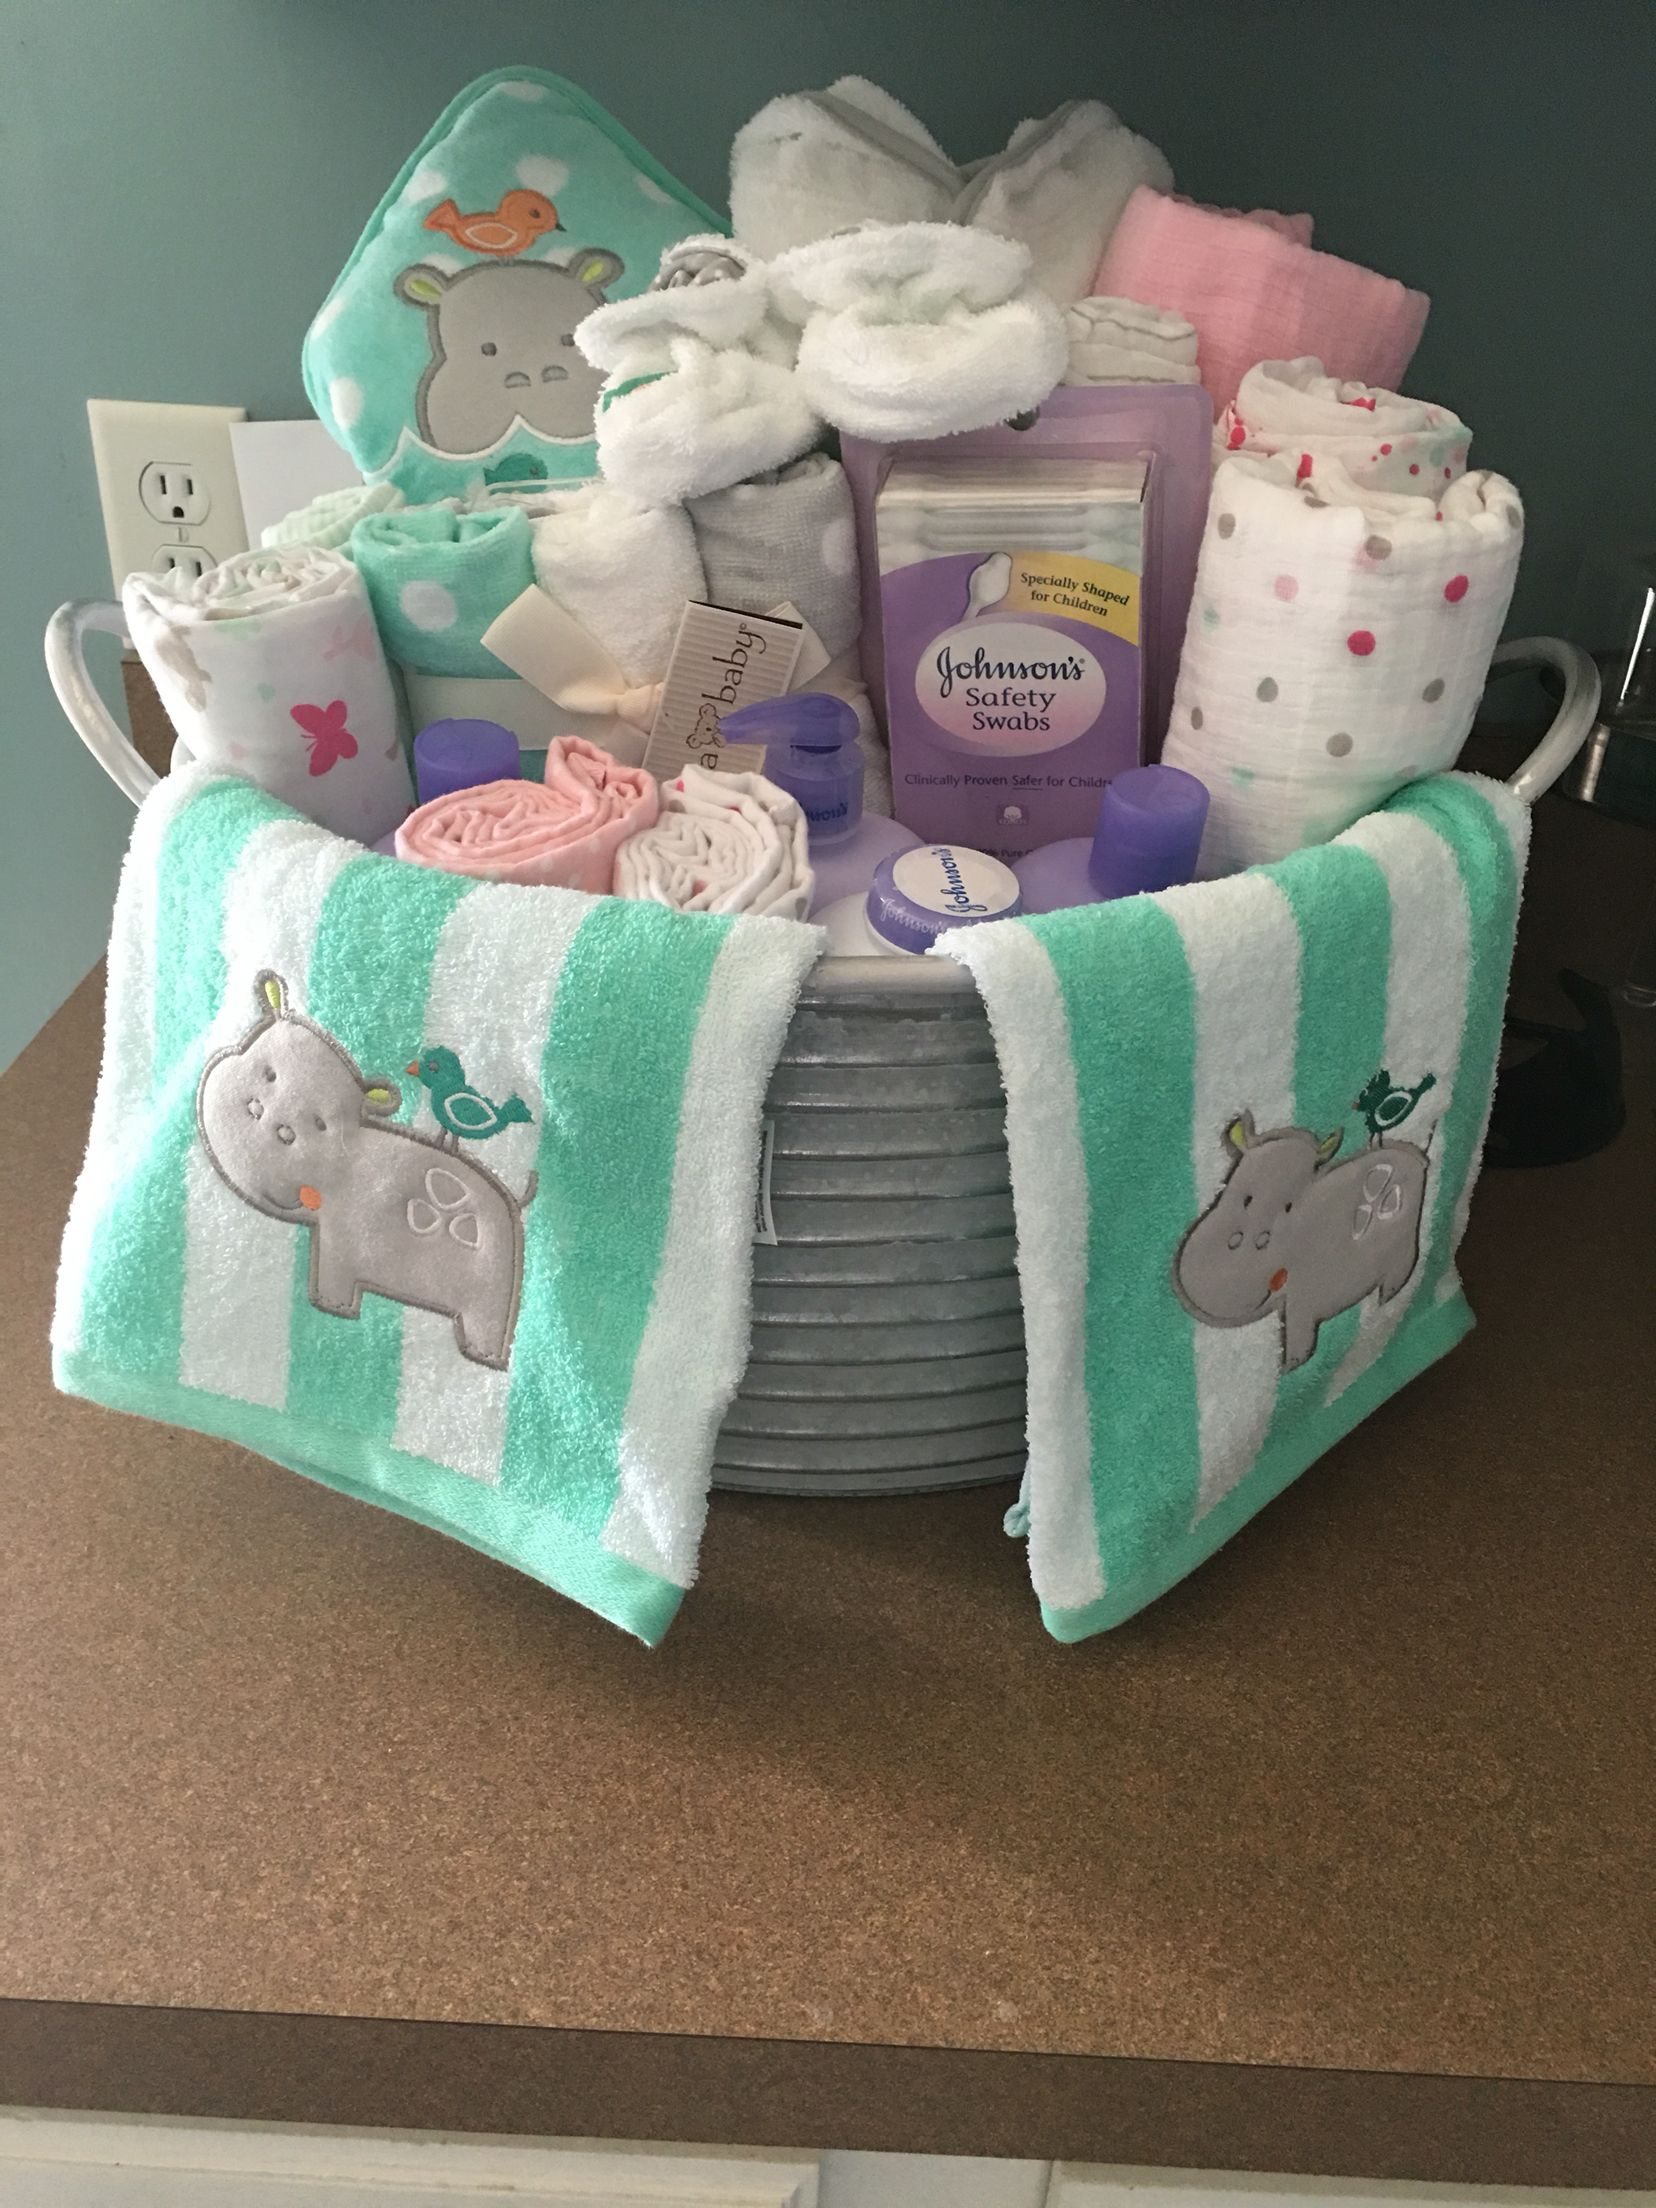 Baby shower present I made Galvanized bucket with baby bath items  Baby Shower Inspiration